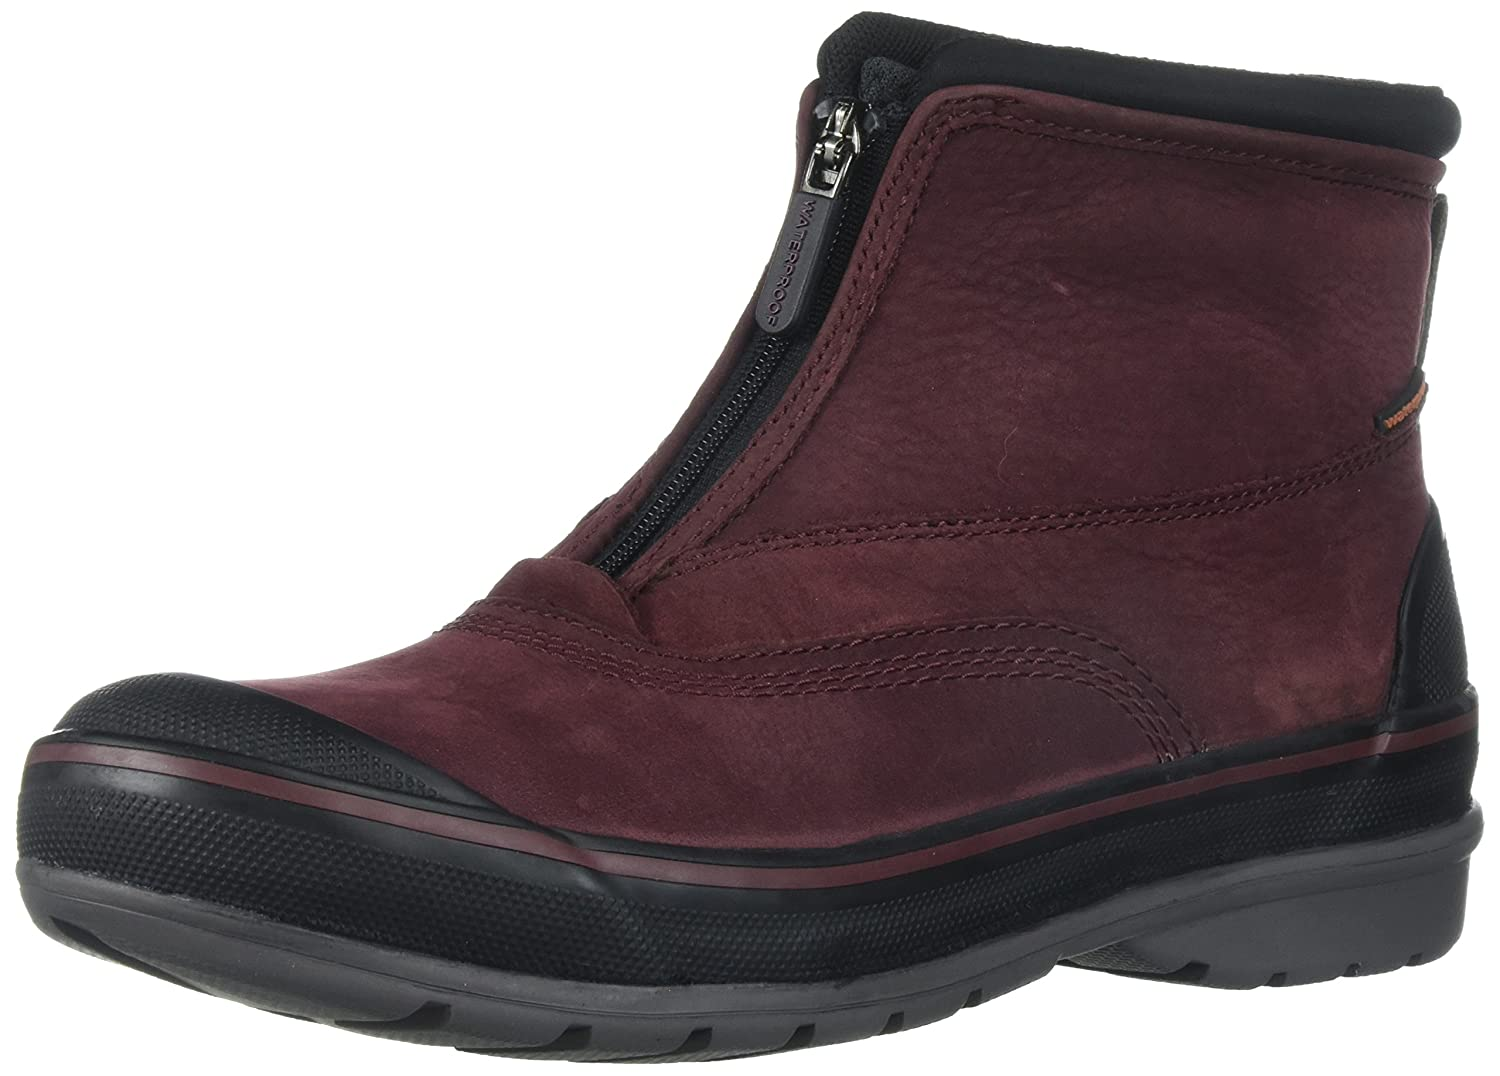 CLARKS Women's Muckers Hike Snow Boot B01N2XXCD3 7 W US|Burgundy